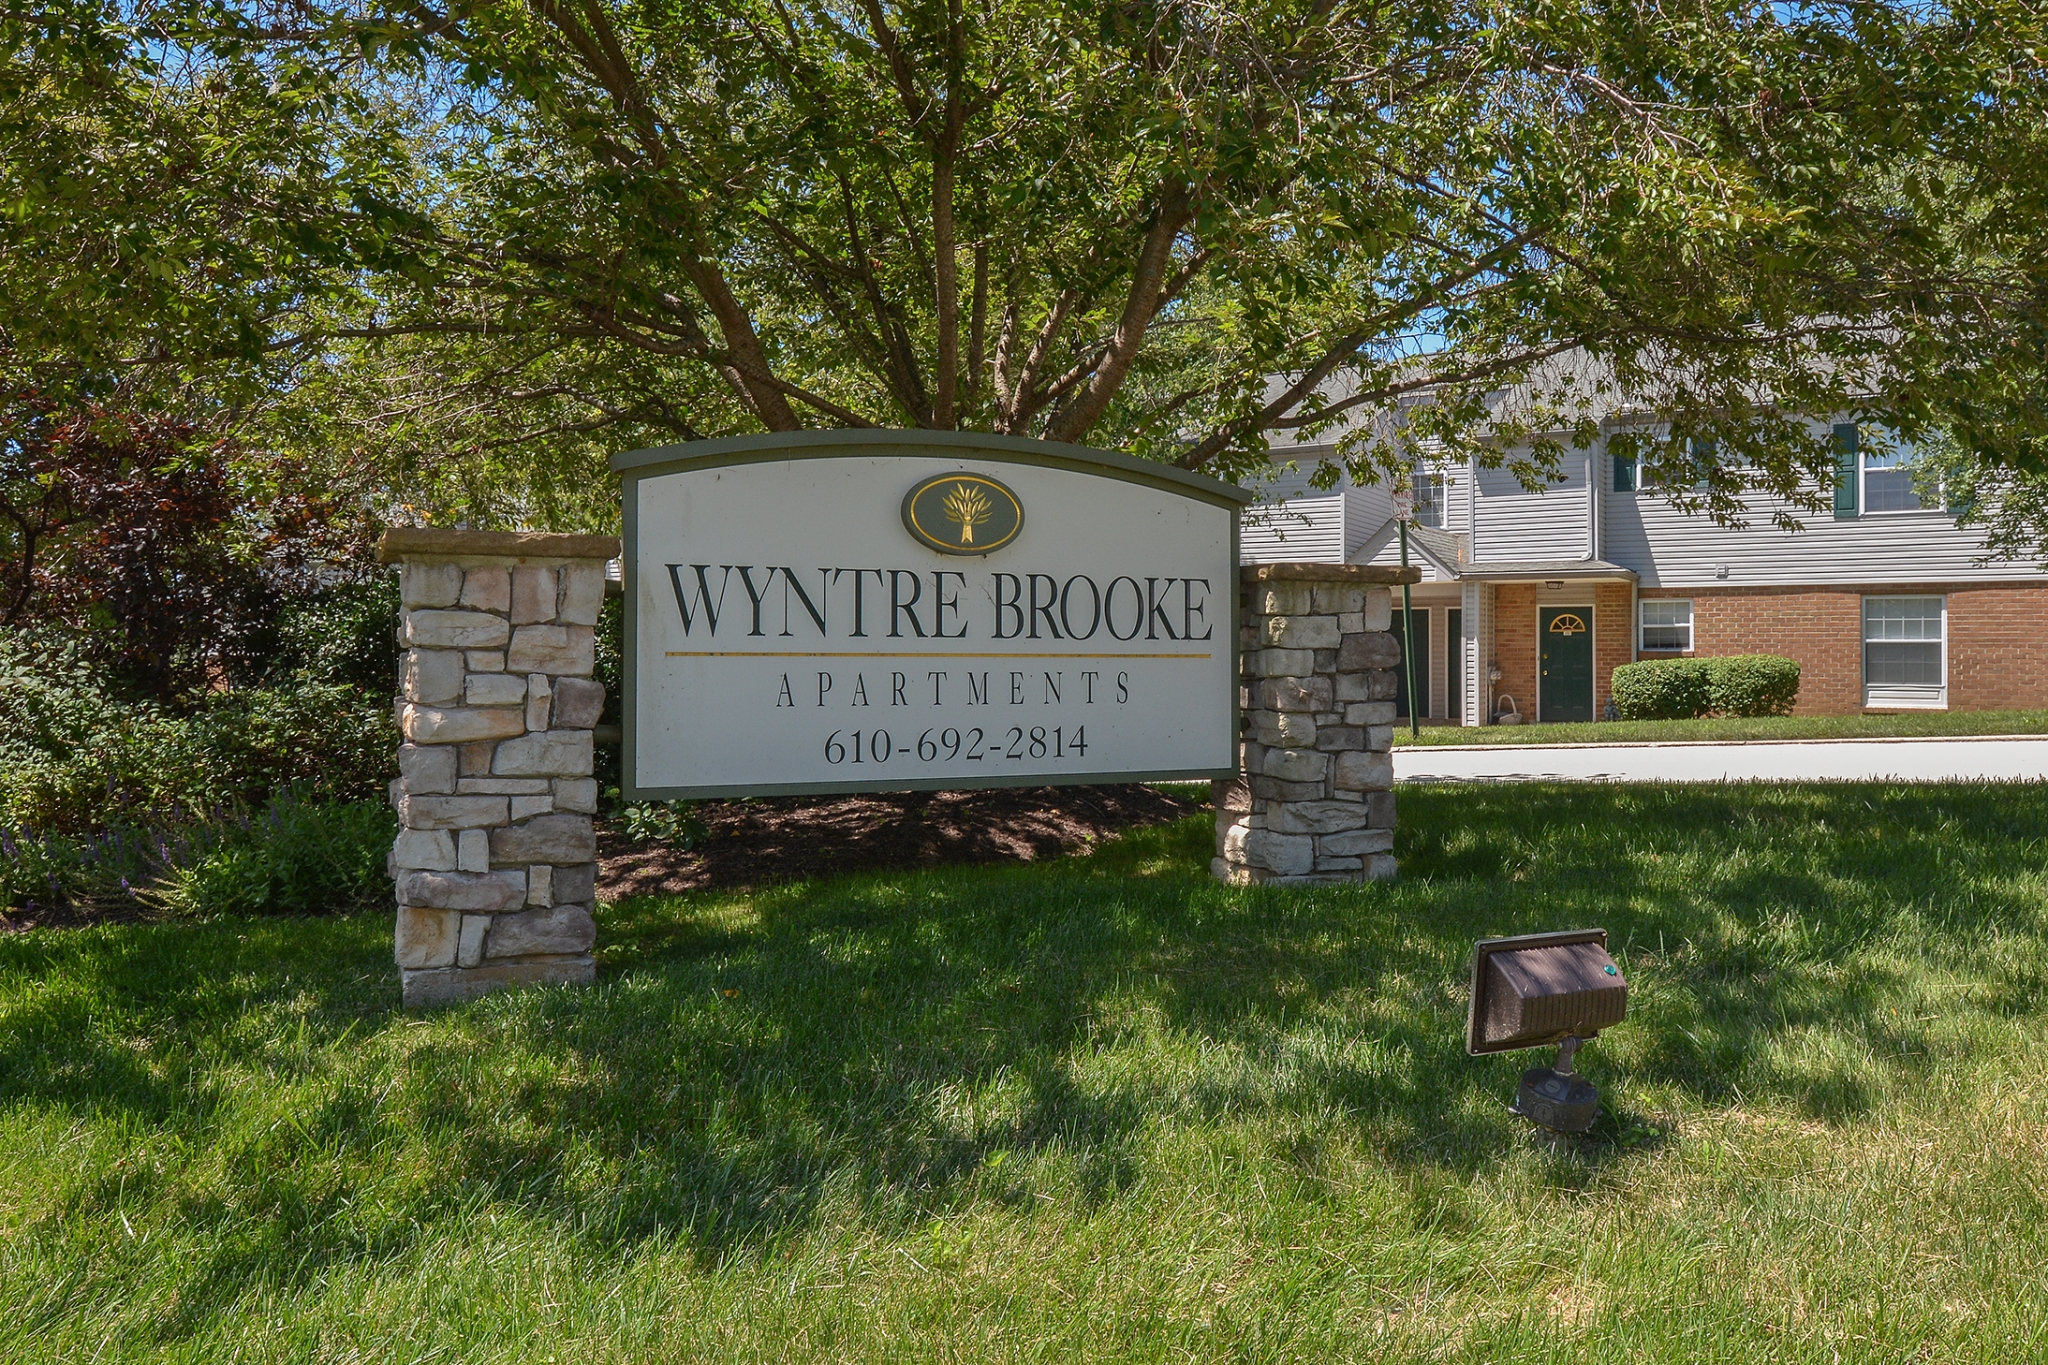 Wyntre Brooke Apartments image 0